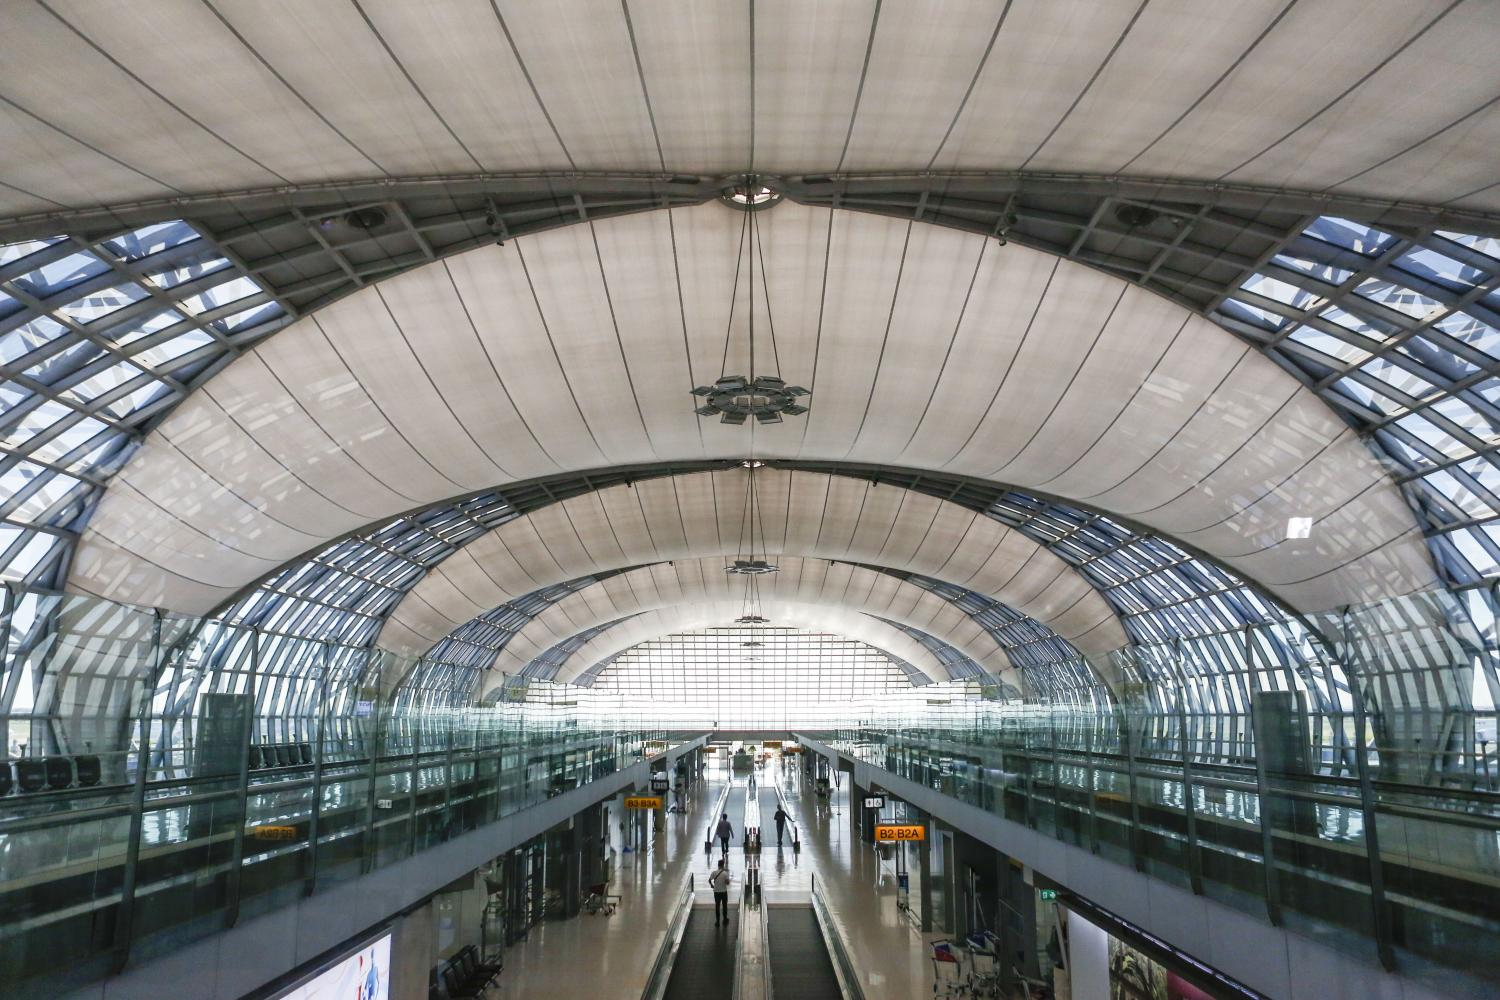 Under the plan, ultra-fast wireless broadband service using 5G networks is to be provided to visitors once they arrive at Suvarnabhumi airport.(Photo by Pattarapong Chatpattarasill)